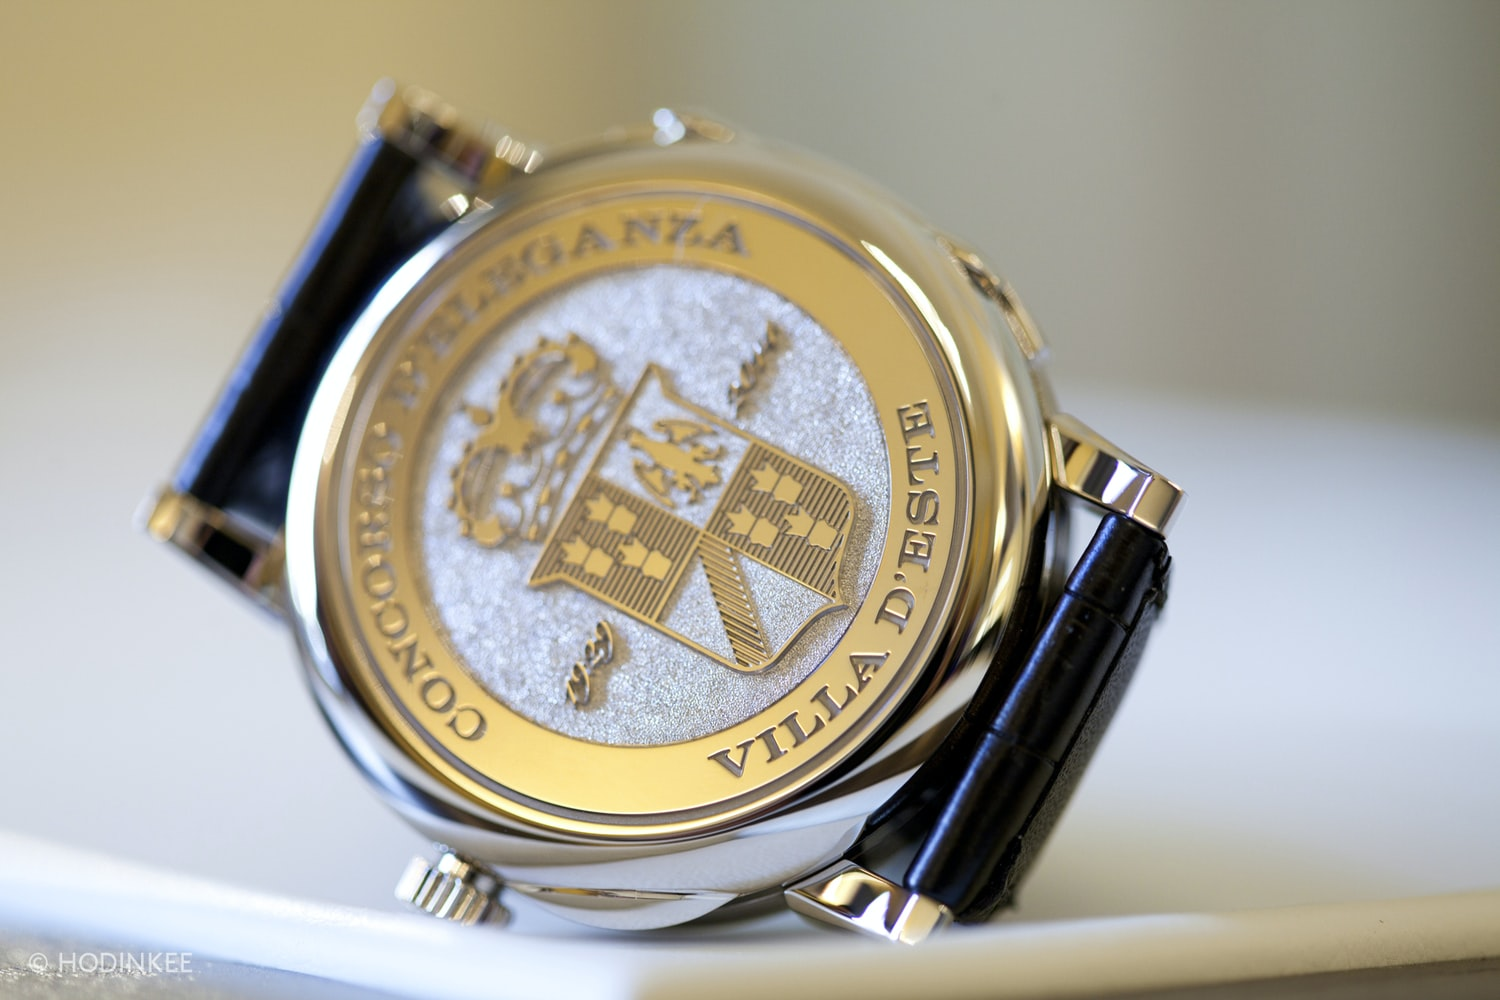 Hand-engraved coat of arms at the back of the watch.  Photo Report: Watch And Car Spotting At The 2016 Concorso d'Eleganza Villa d'Este With A. Lange & Söhne Photo Report: Watch And Car Spotting At The 2016 Concorso d'Eleganza Villa d'Este With A. Lange & Söhne  img